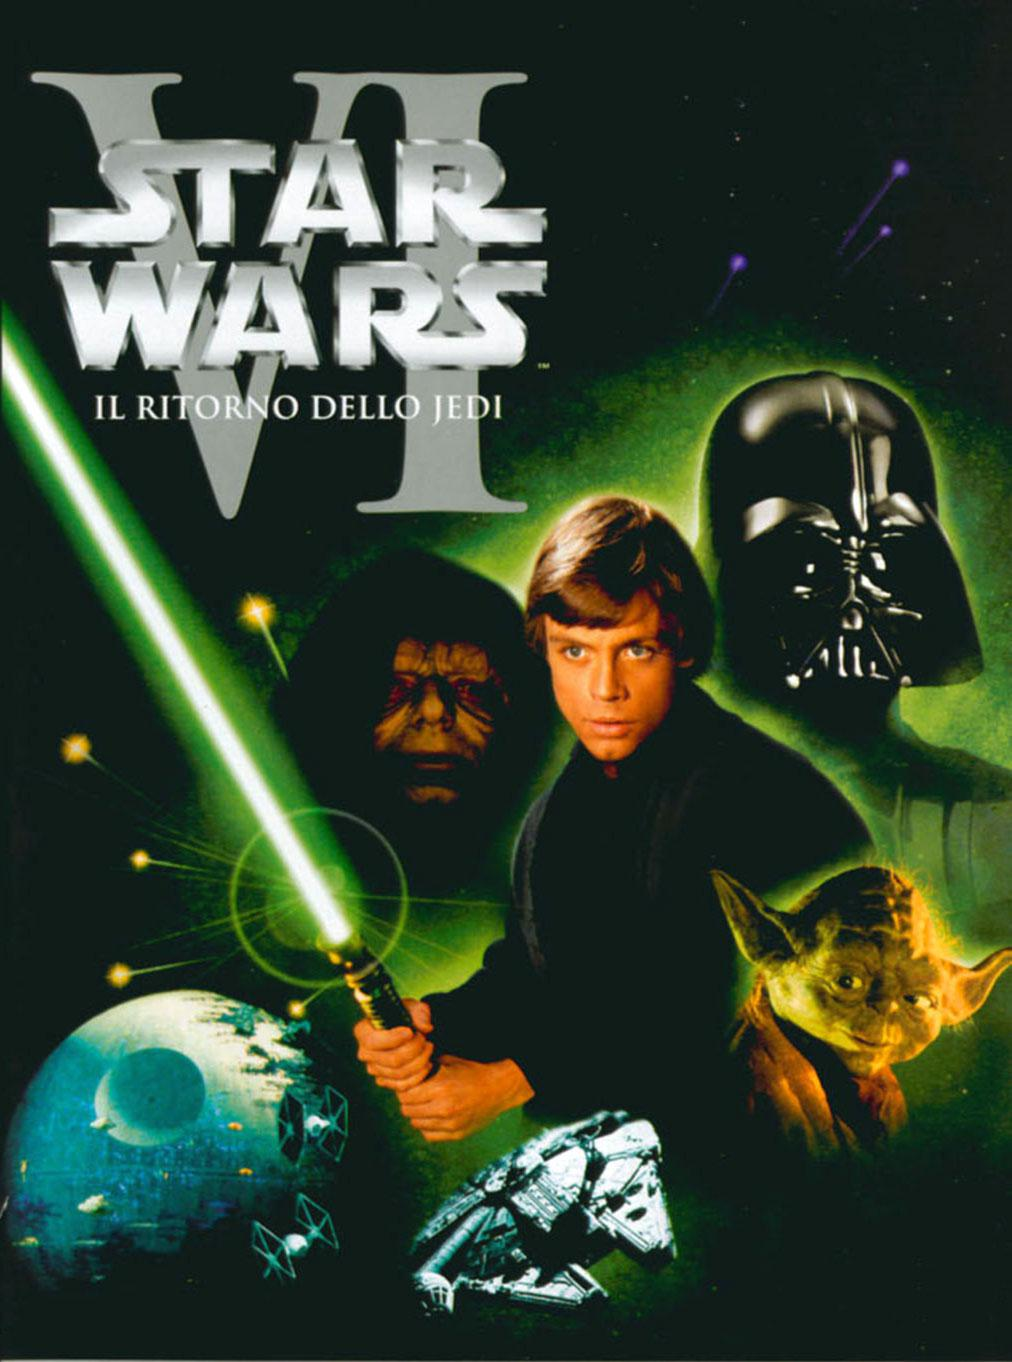 Star Wars 6 - Guerre Stellari 6 il ritorno dello Jedi - Return of Jedi